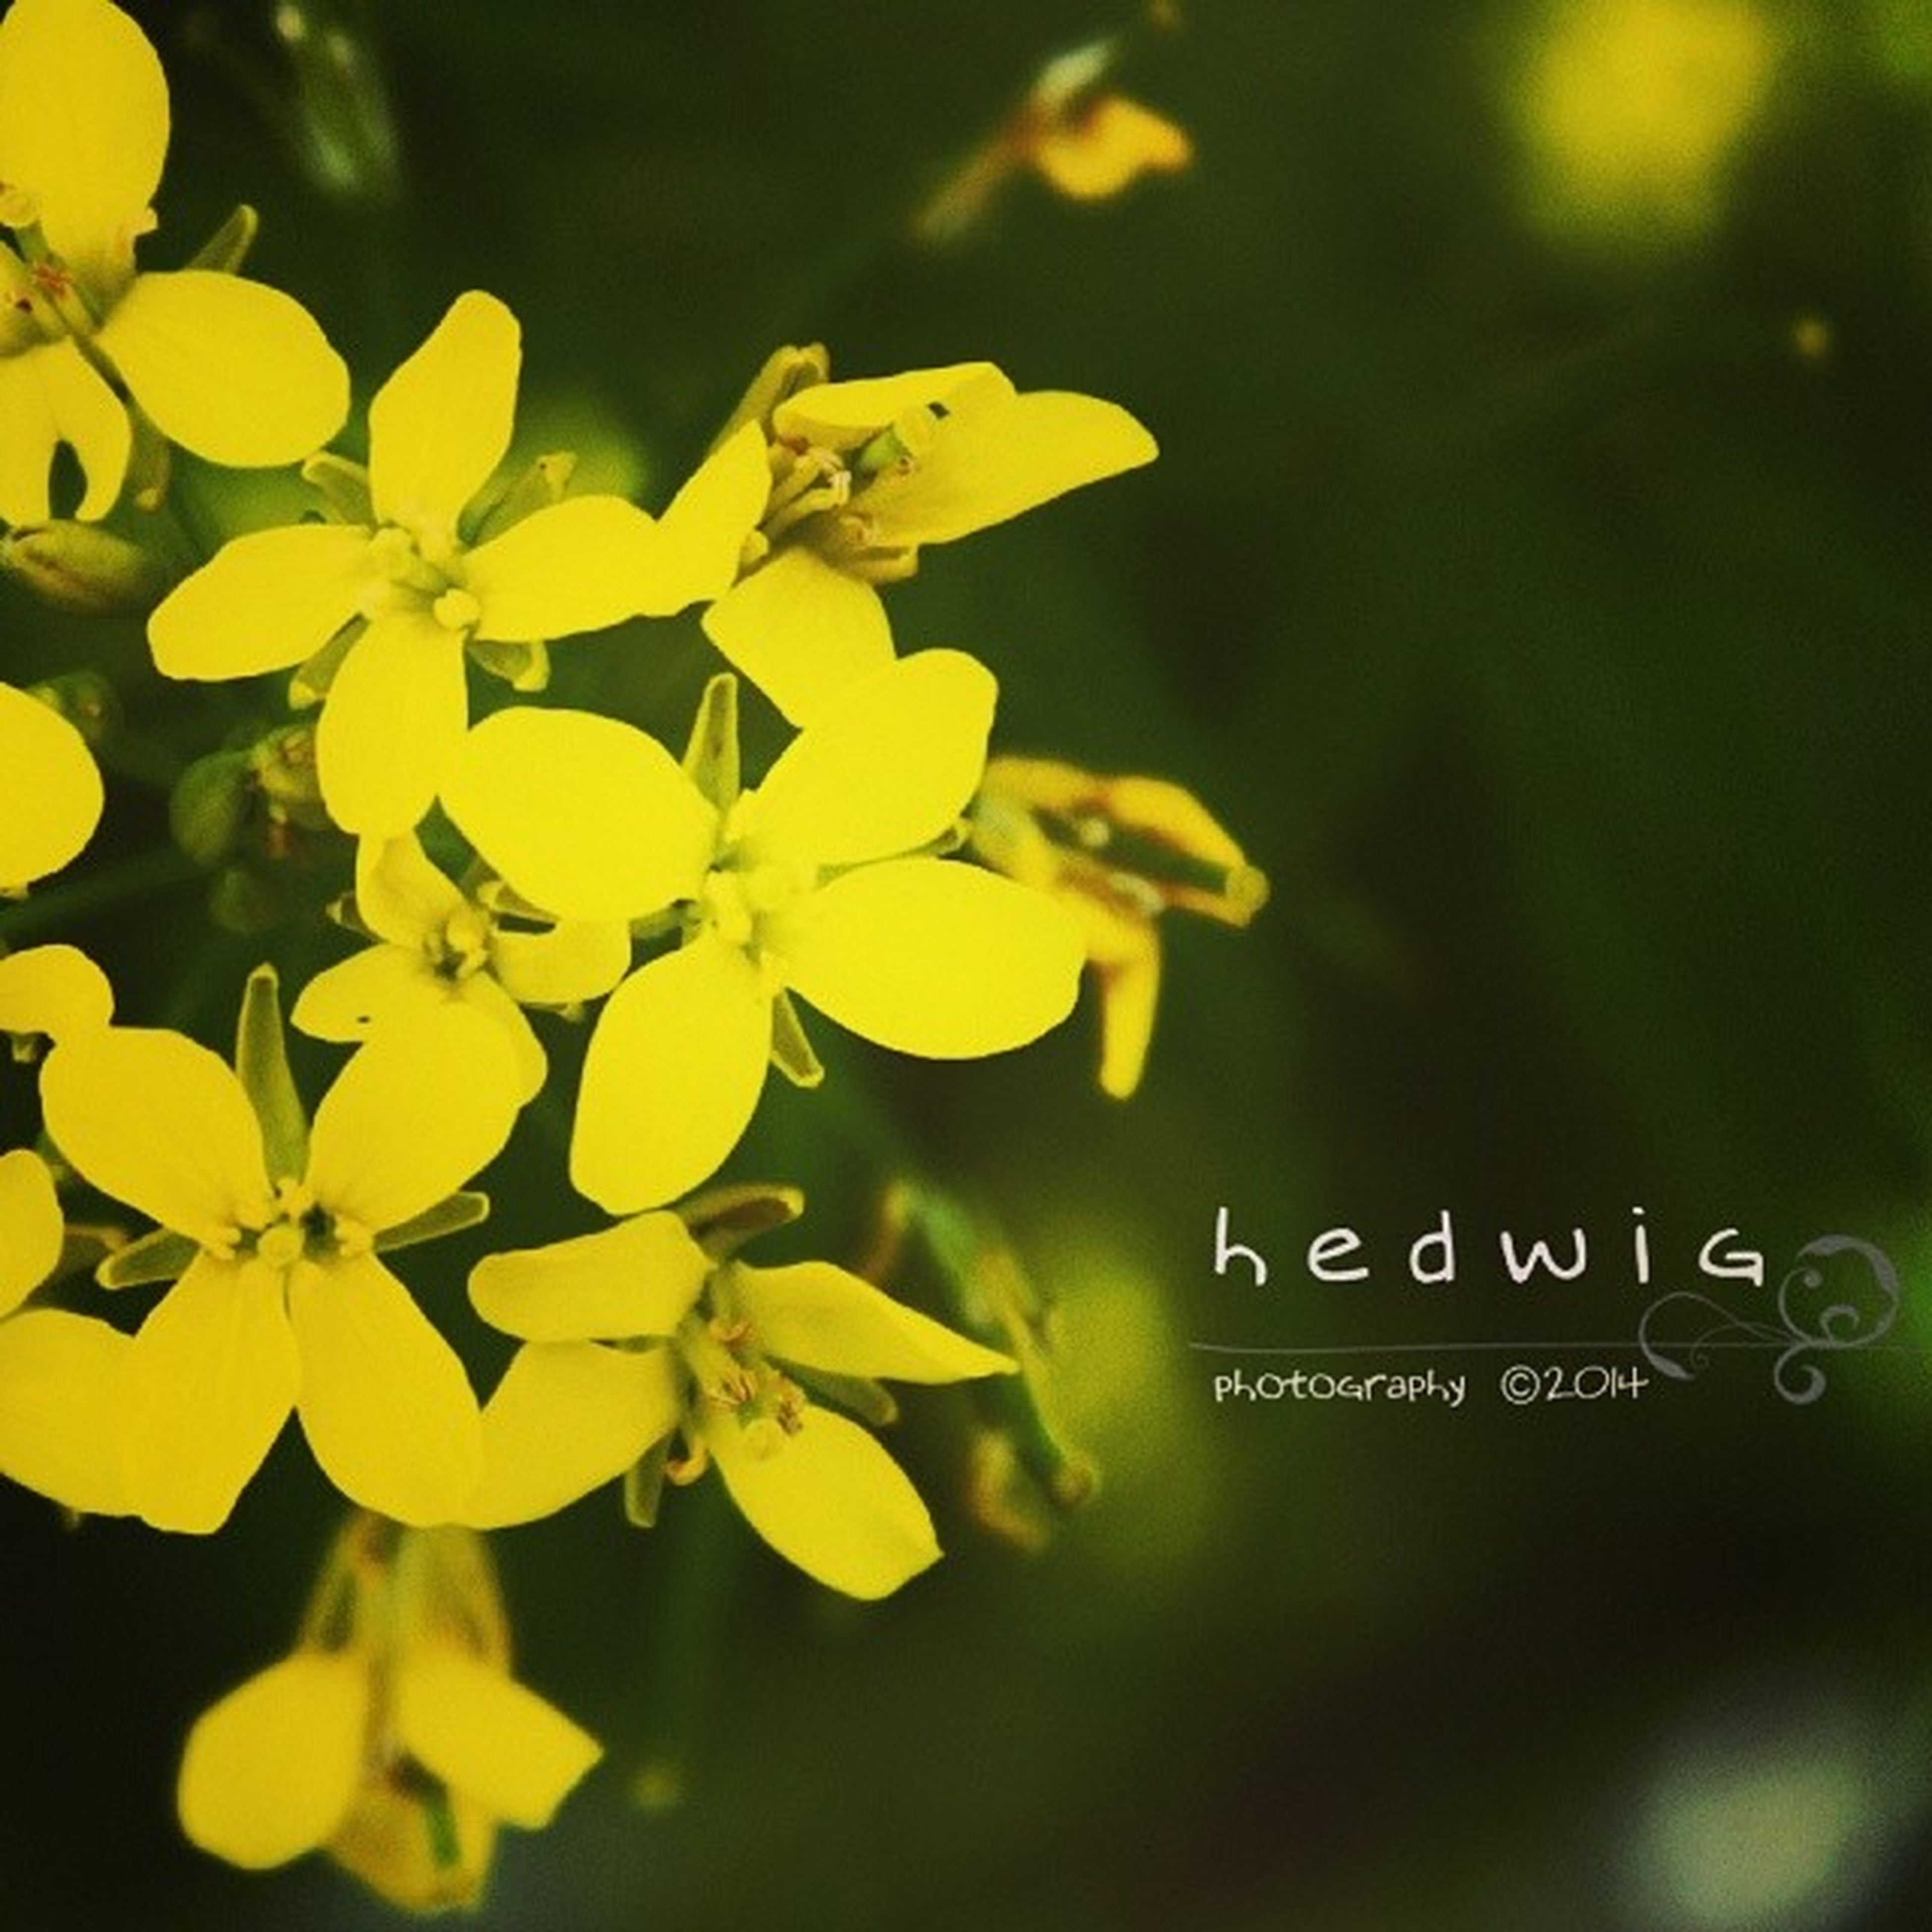 yellow, flower, focus on foreground, close-up, growth, freshness, selective focus, petal, beauty in nature, fragility, nature, plant, day, outdoors, flower head, text, no people, blooming, western script, stem